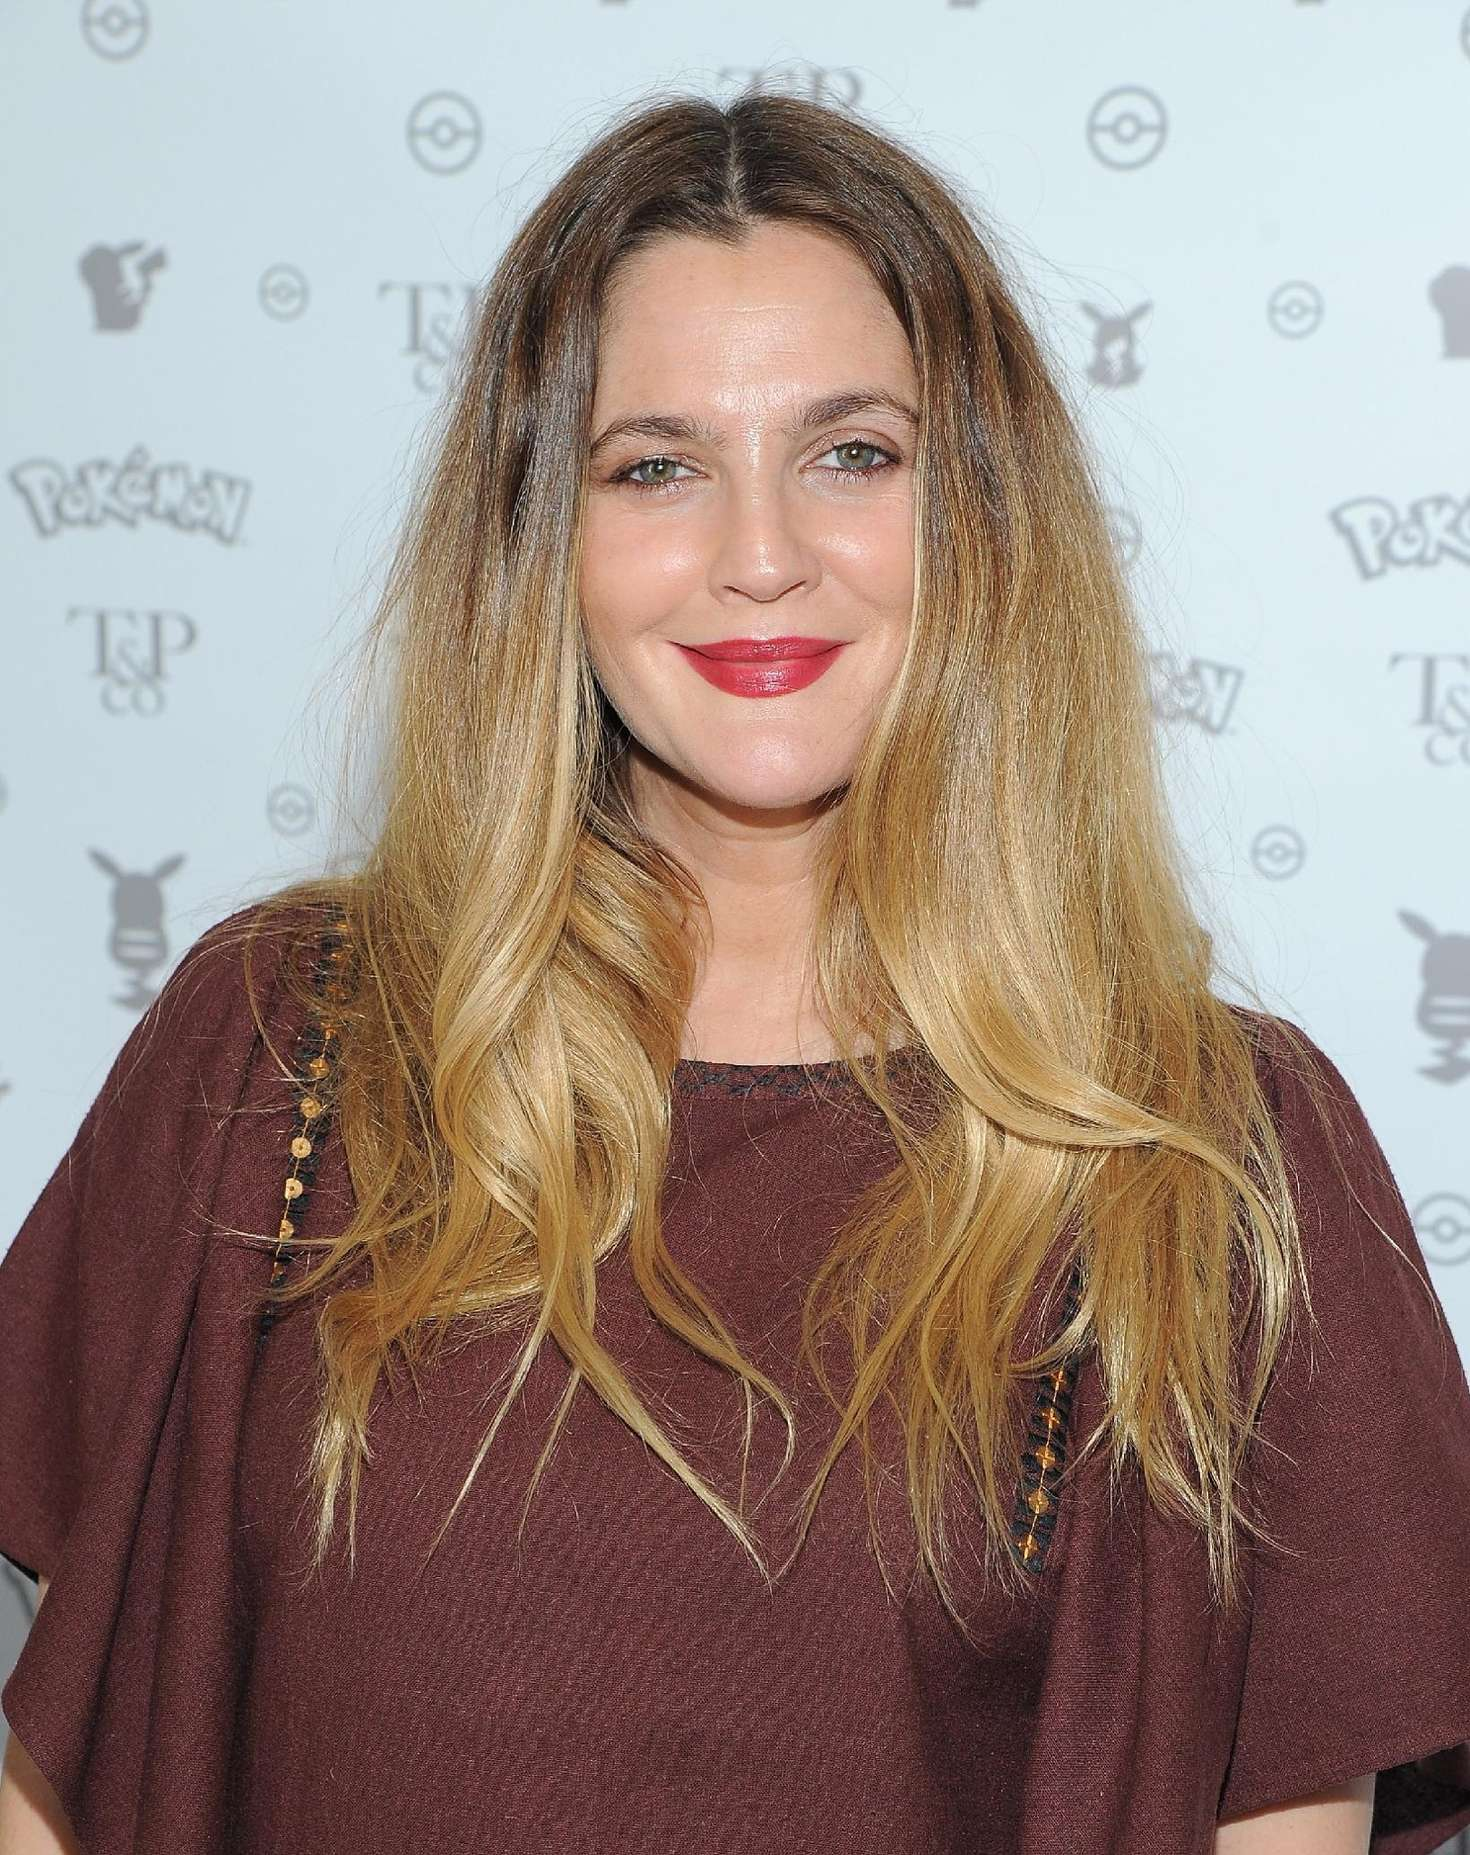 Drew Barrymore 2016 : Drew Barrymore: Tracy Paul and Co Presents Pokemon Afternoon Soiree -16